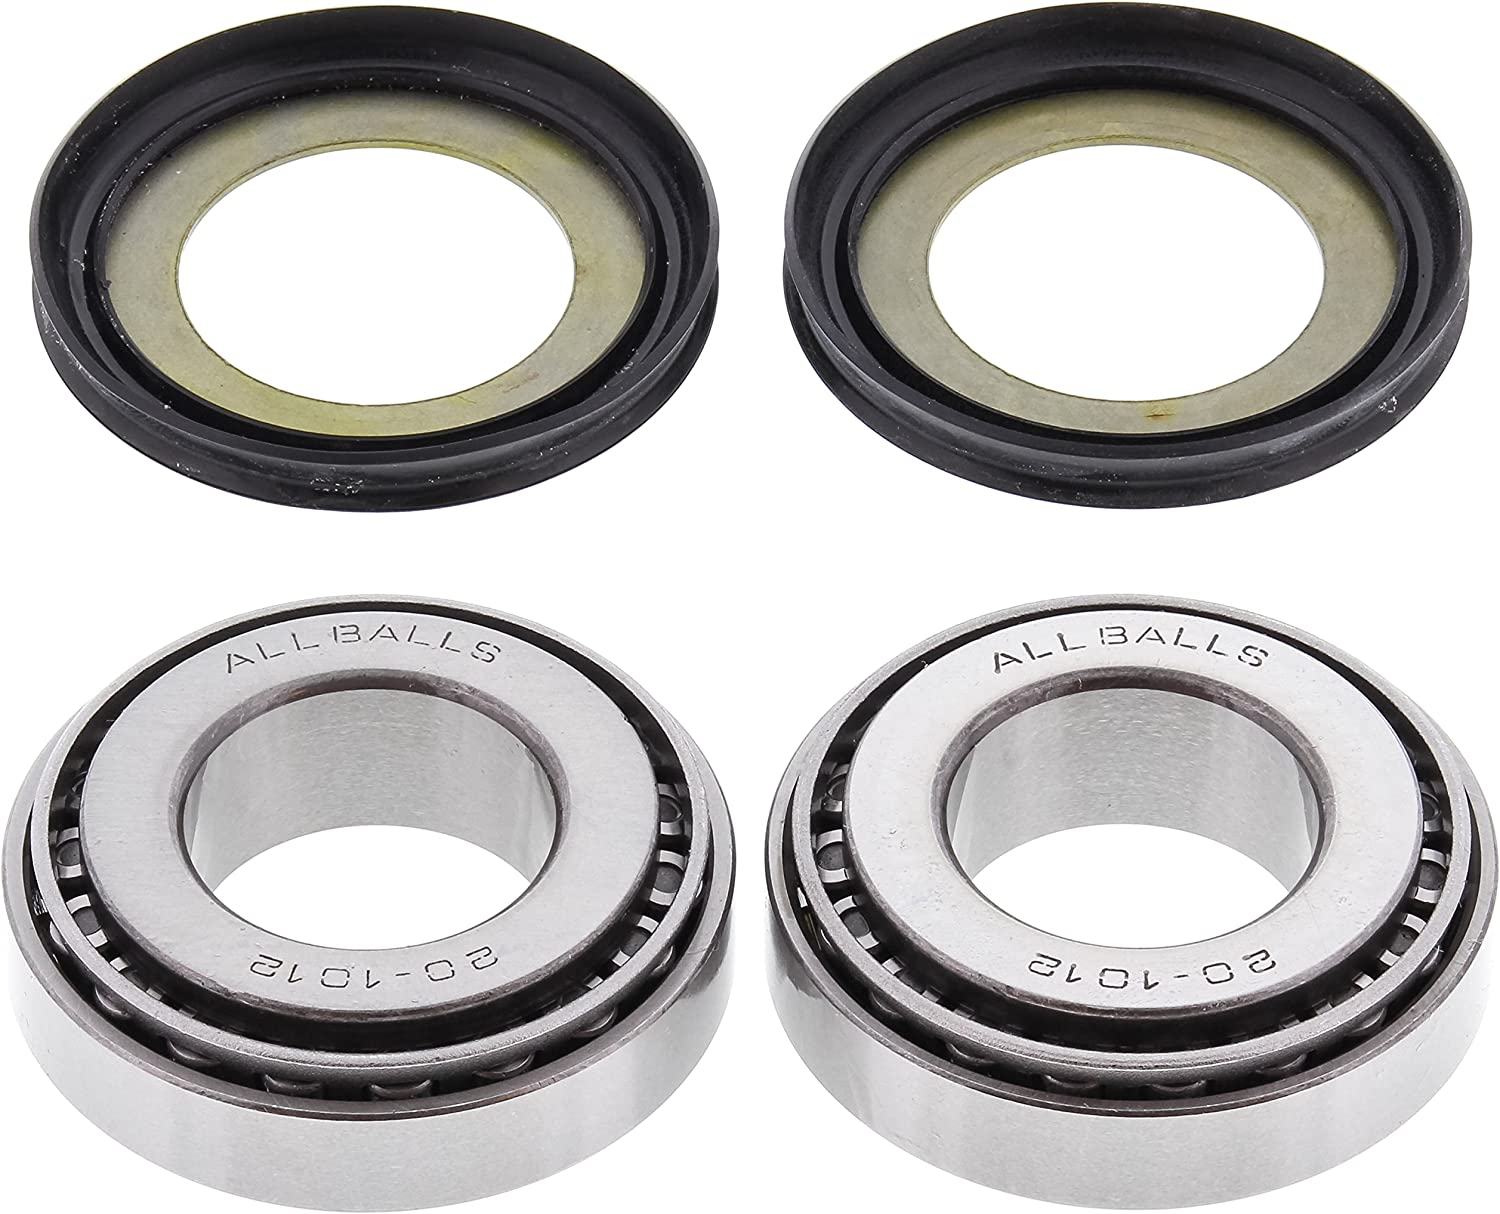 ALL BALLS REAR WHEEL BEARING KIT FITS CAGIVA RAPTOR 1000 2000-2005